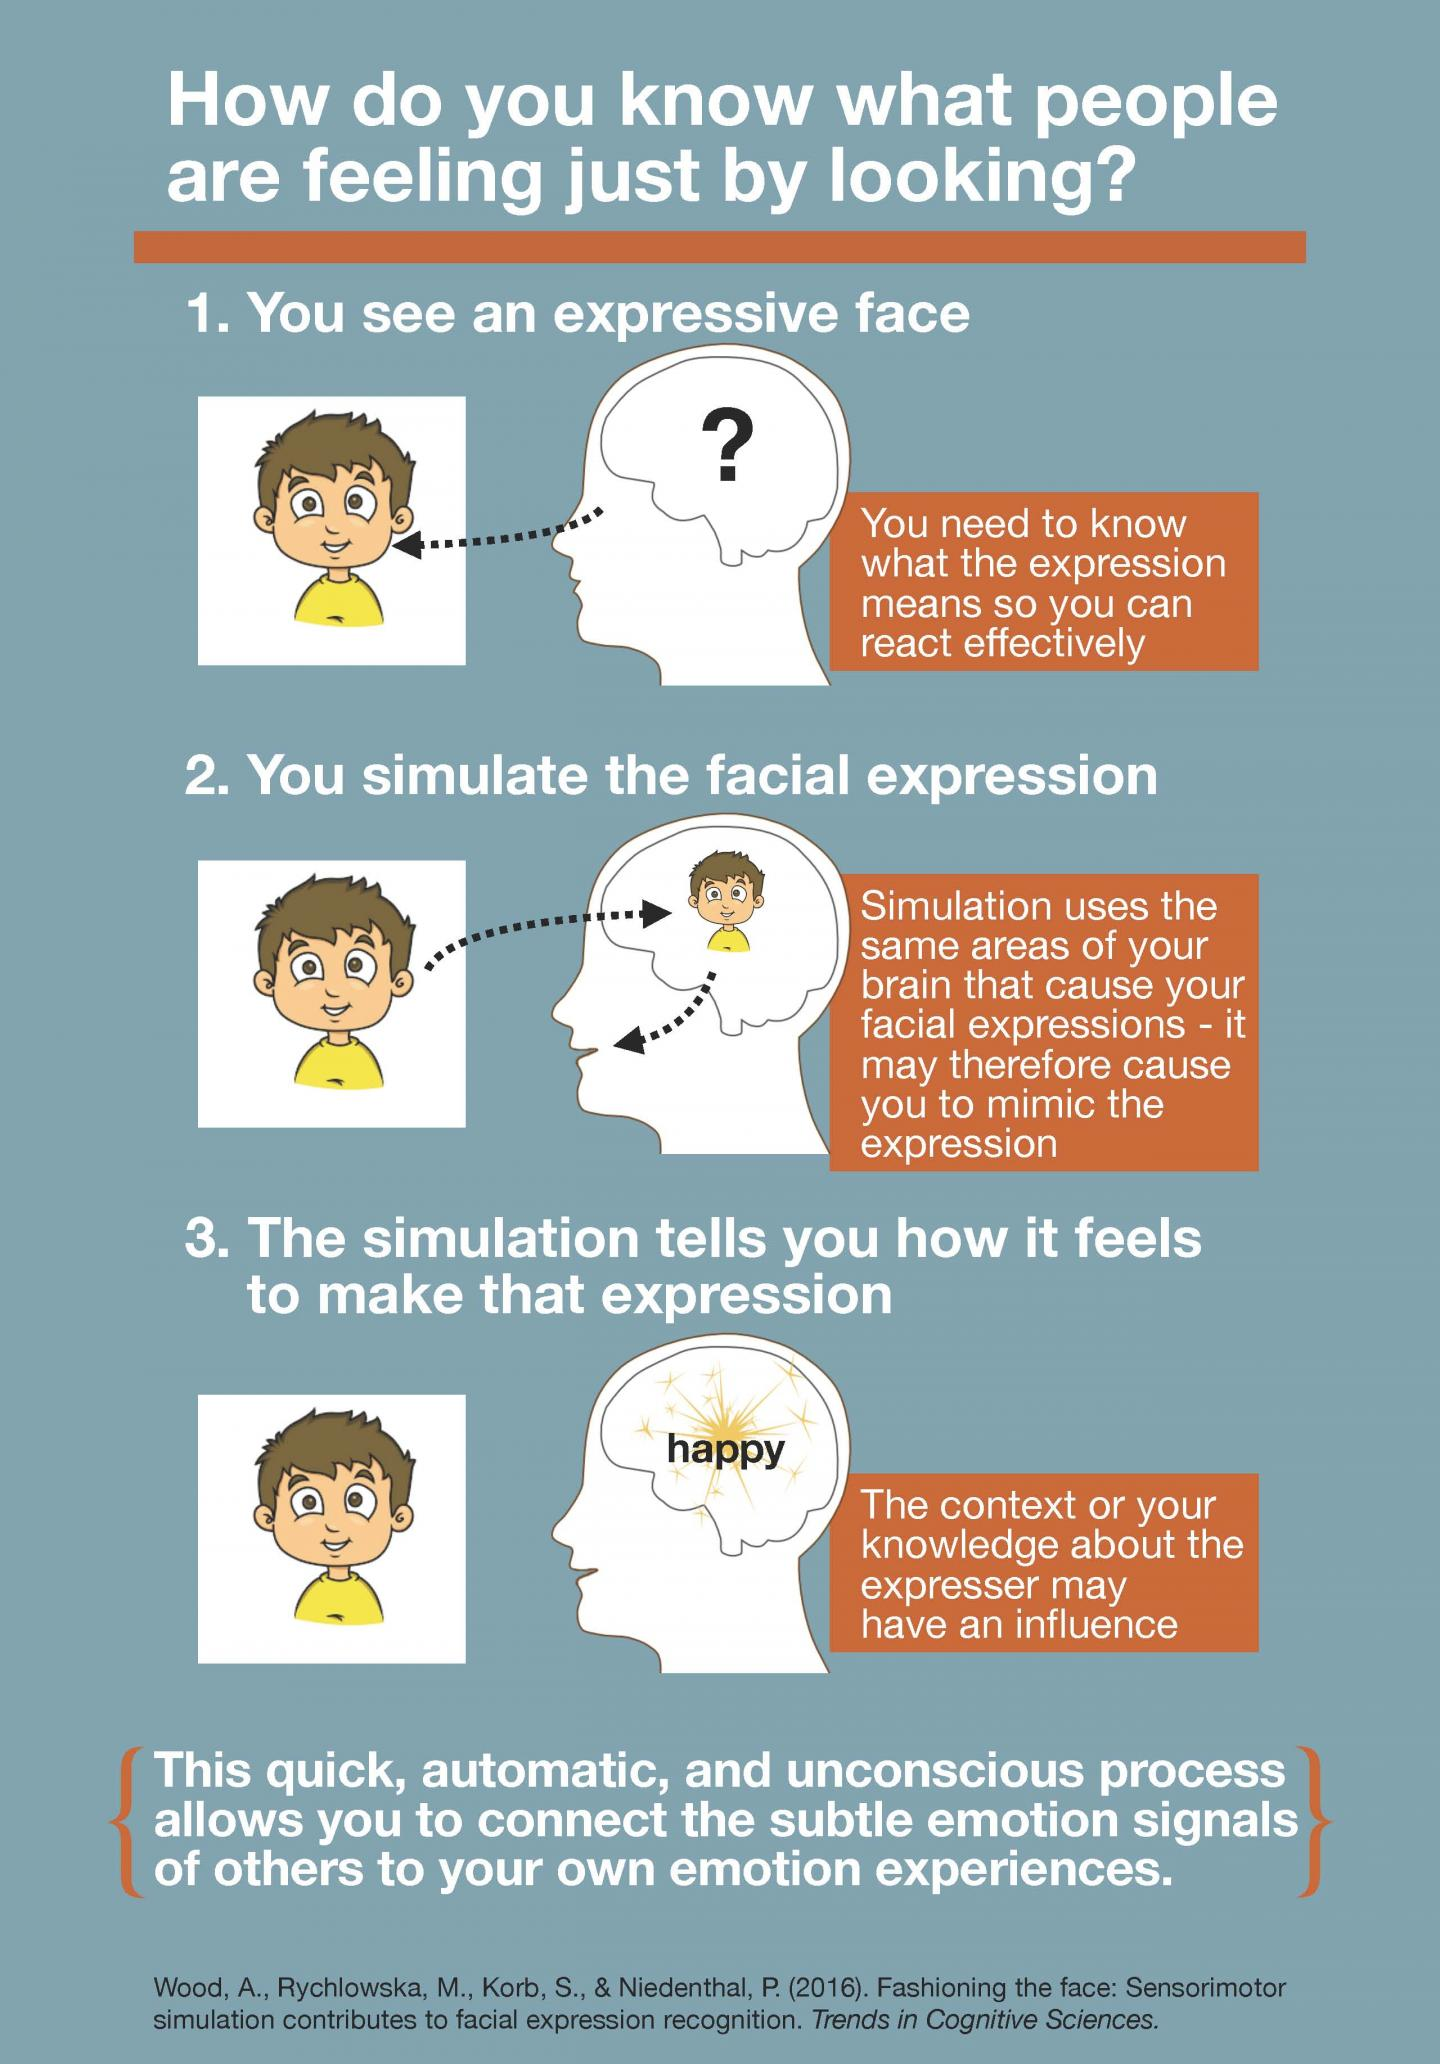 How Do You Know What People Are Feeling Just by Looking?